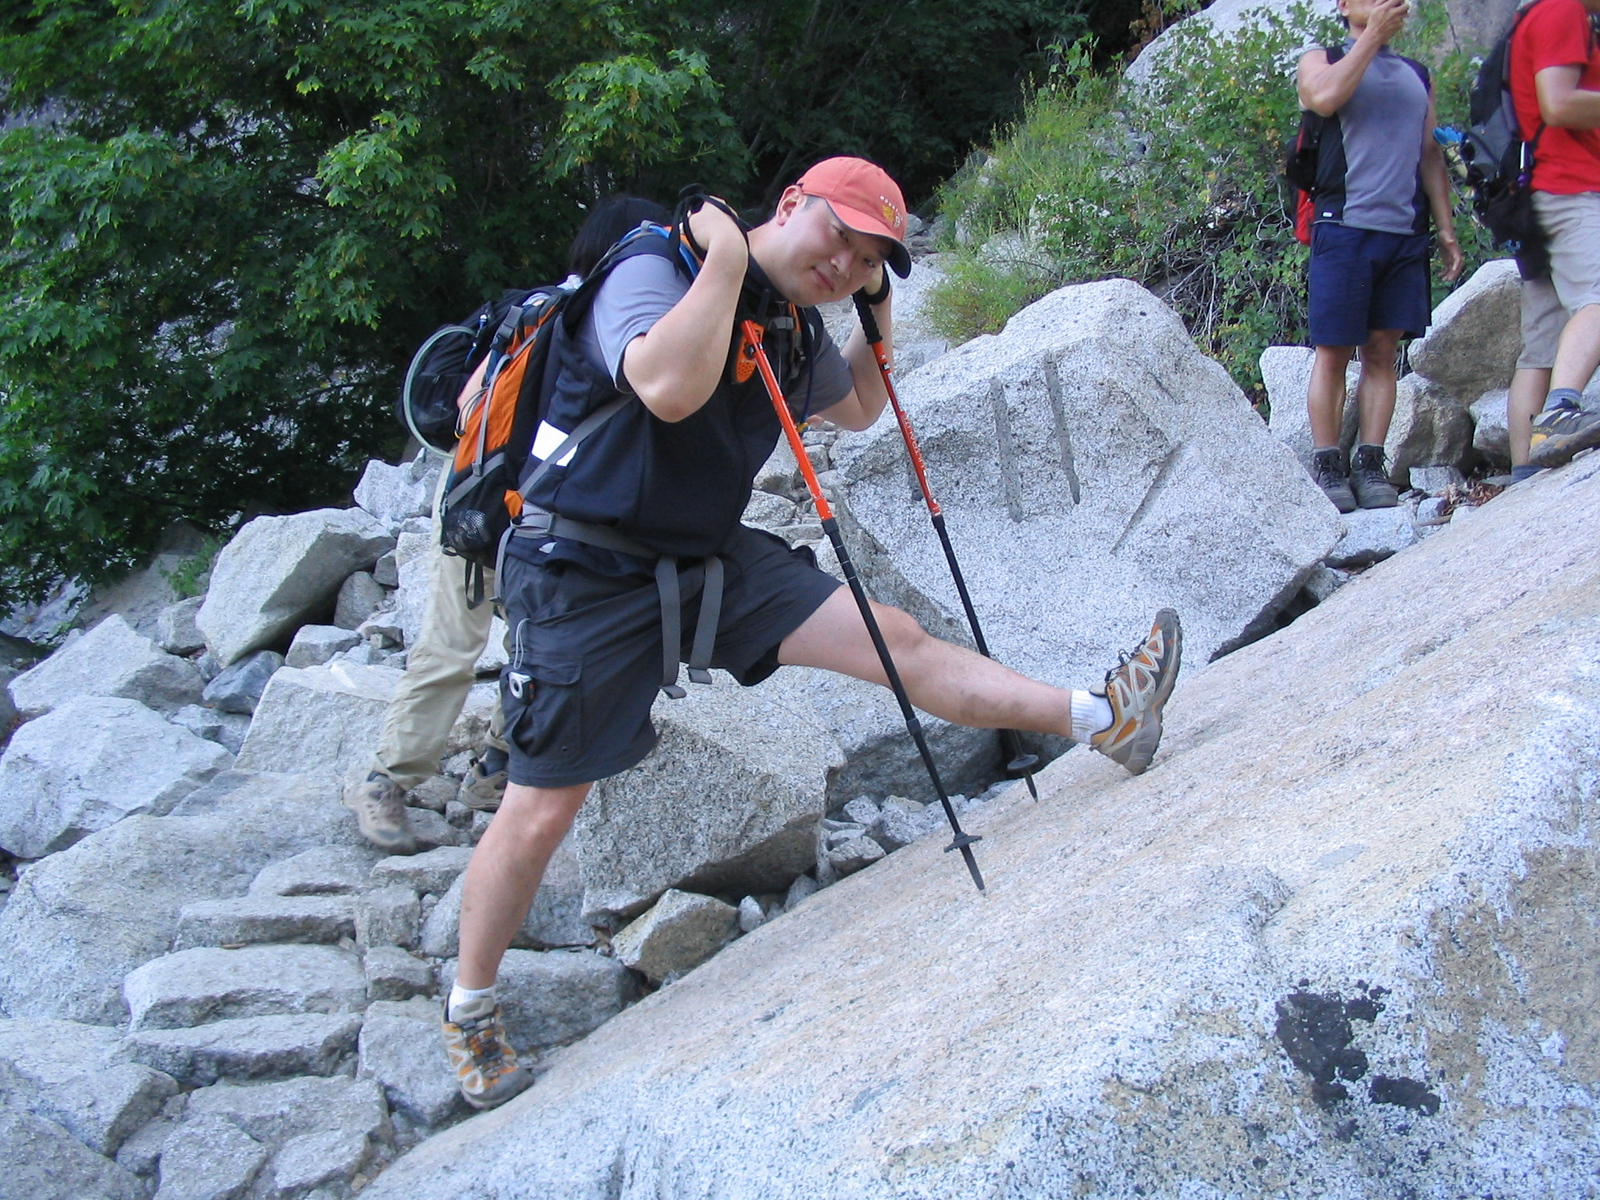 the granite stairs up to little yosemite valley was also quite steep, and we took several rest breaks.  here you can see alex streching and showing off his trekking poles.